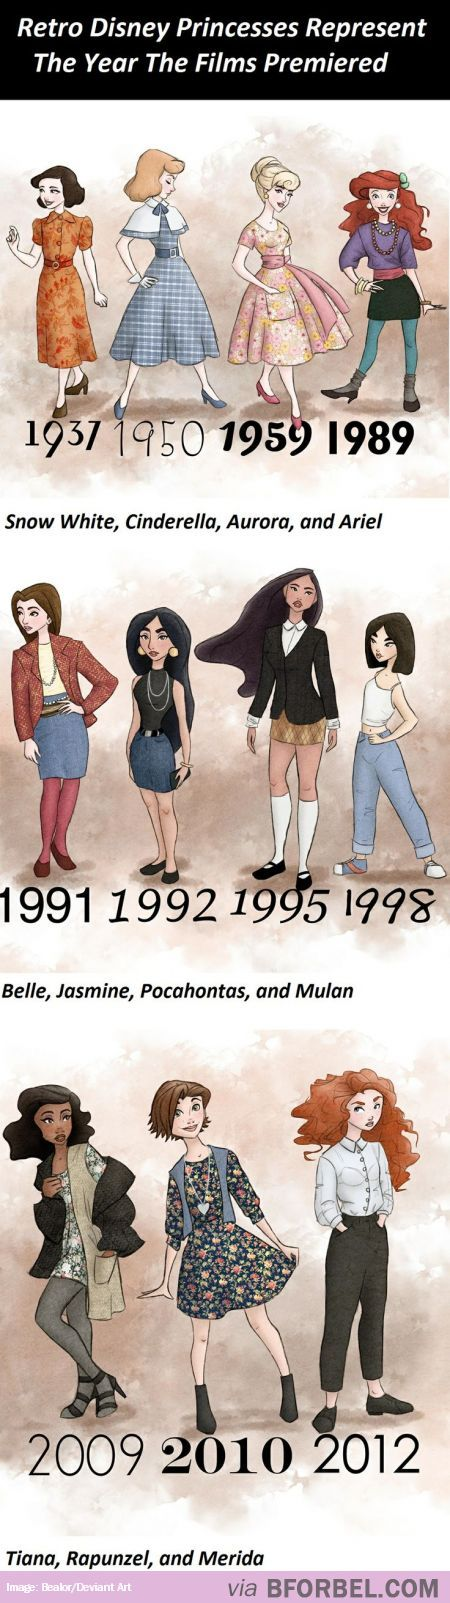 Disney Princesses and a pixar princess I love that they made Mulan and Jasmine shorter. Relatable ^.^